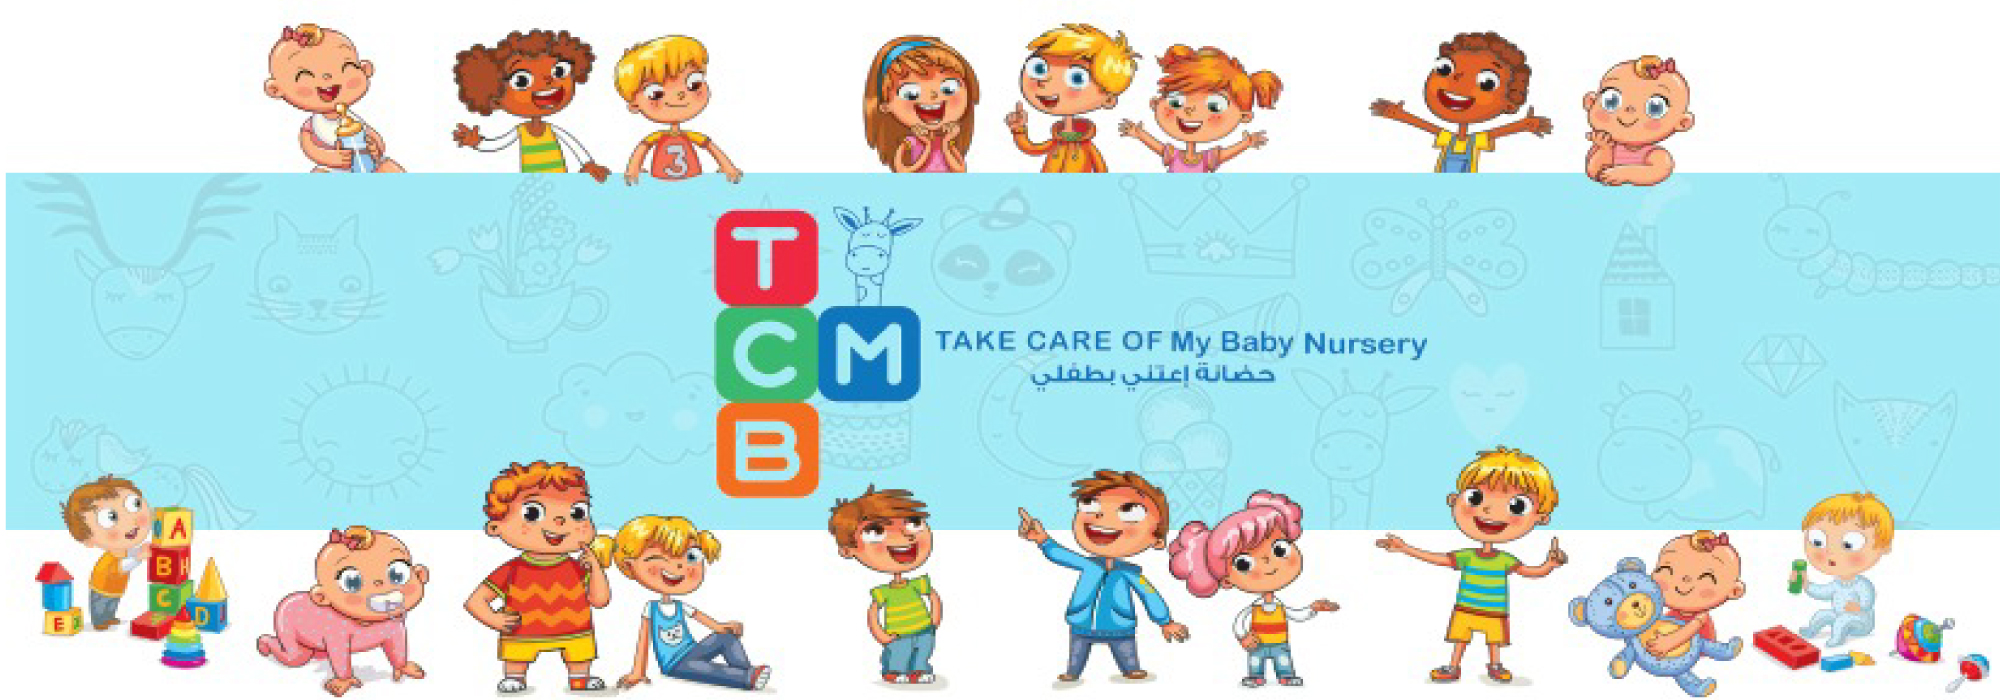 Take Care of My Baby Nursery in Qatar